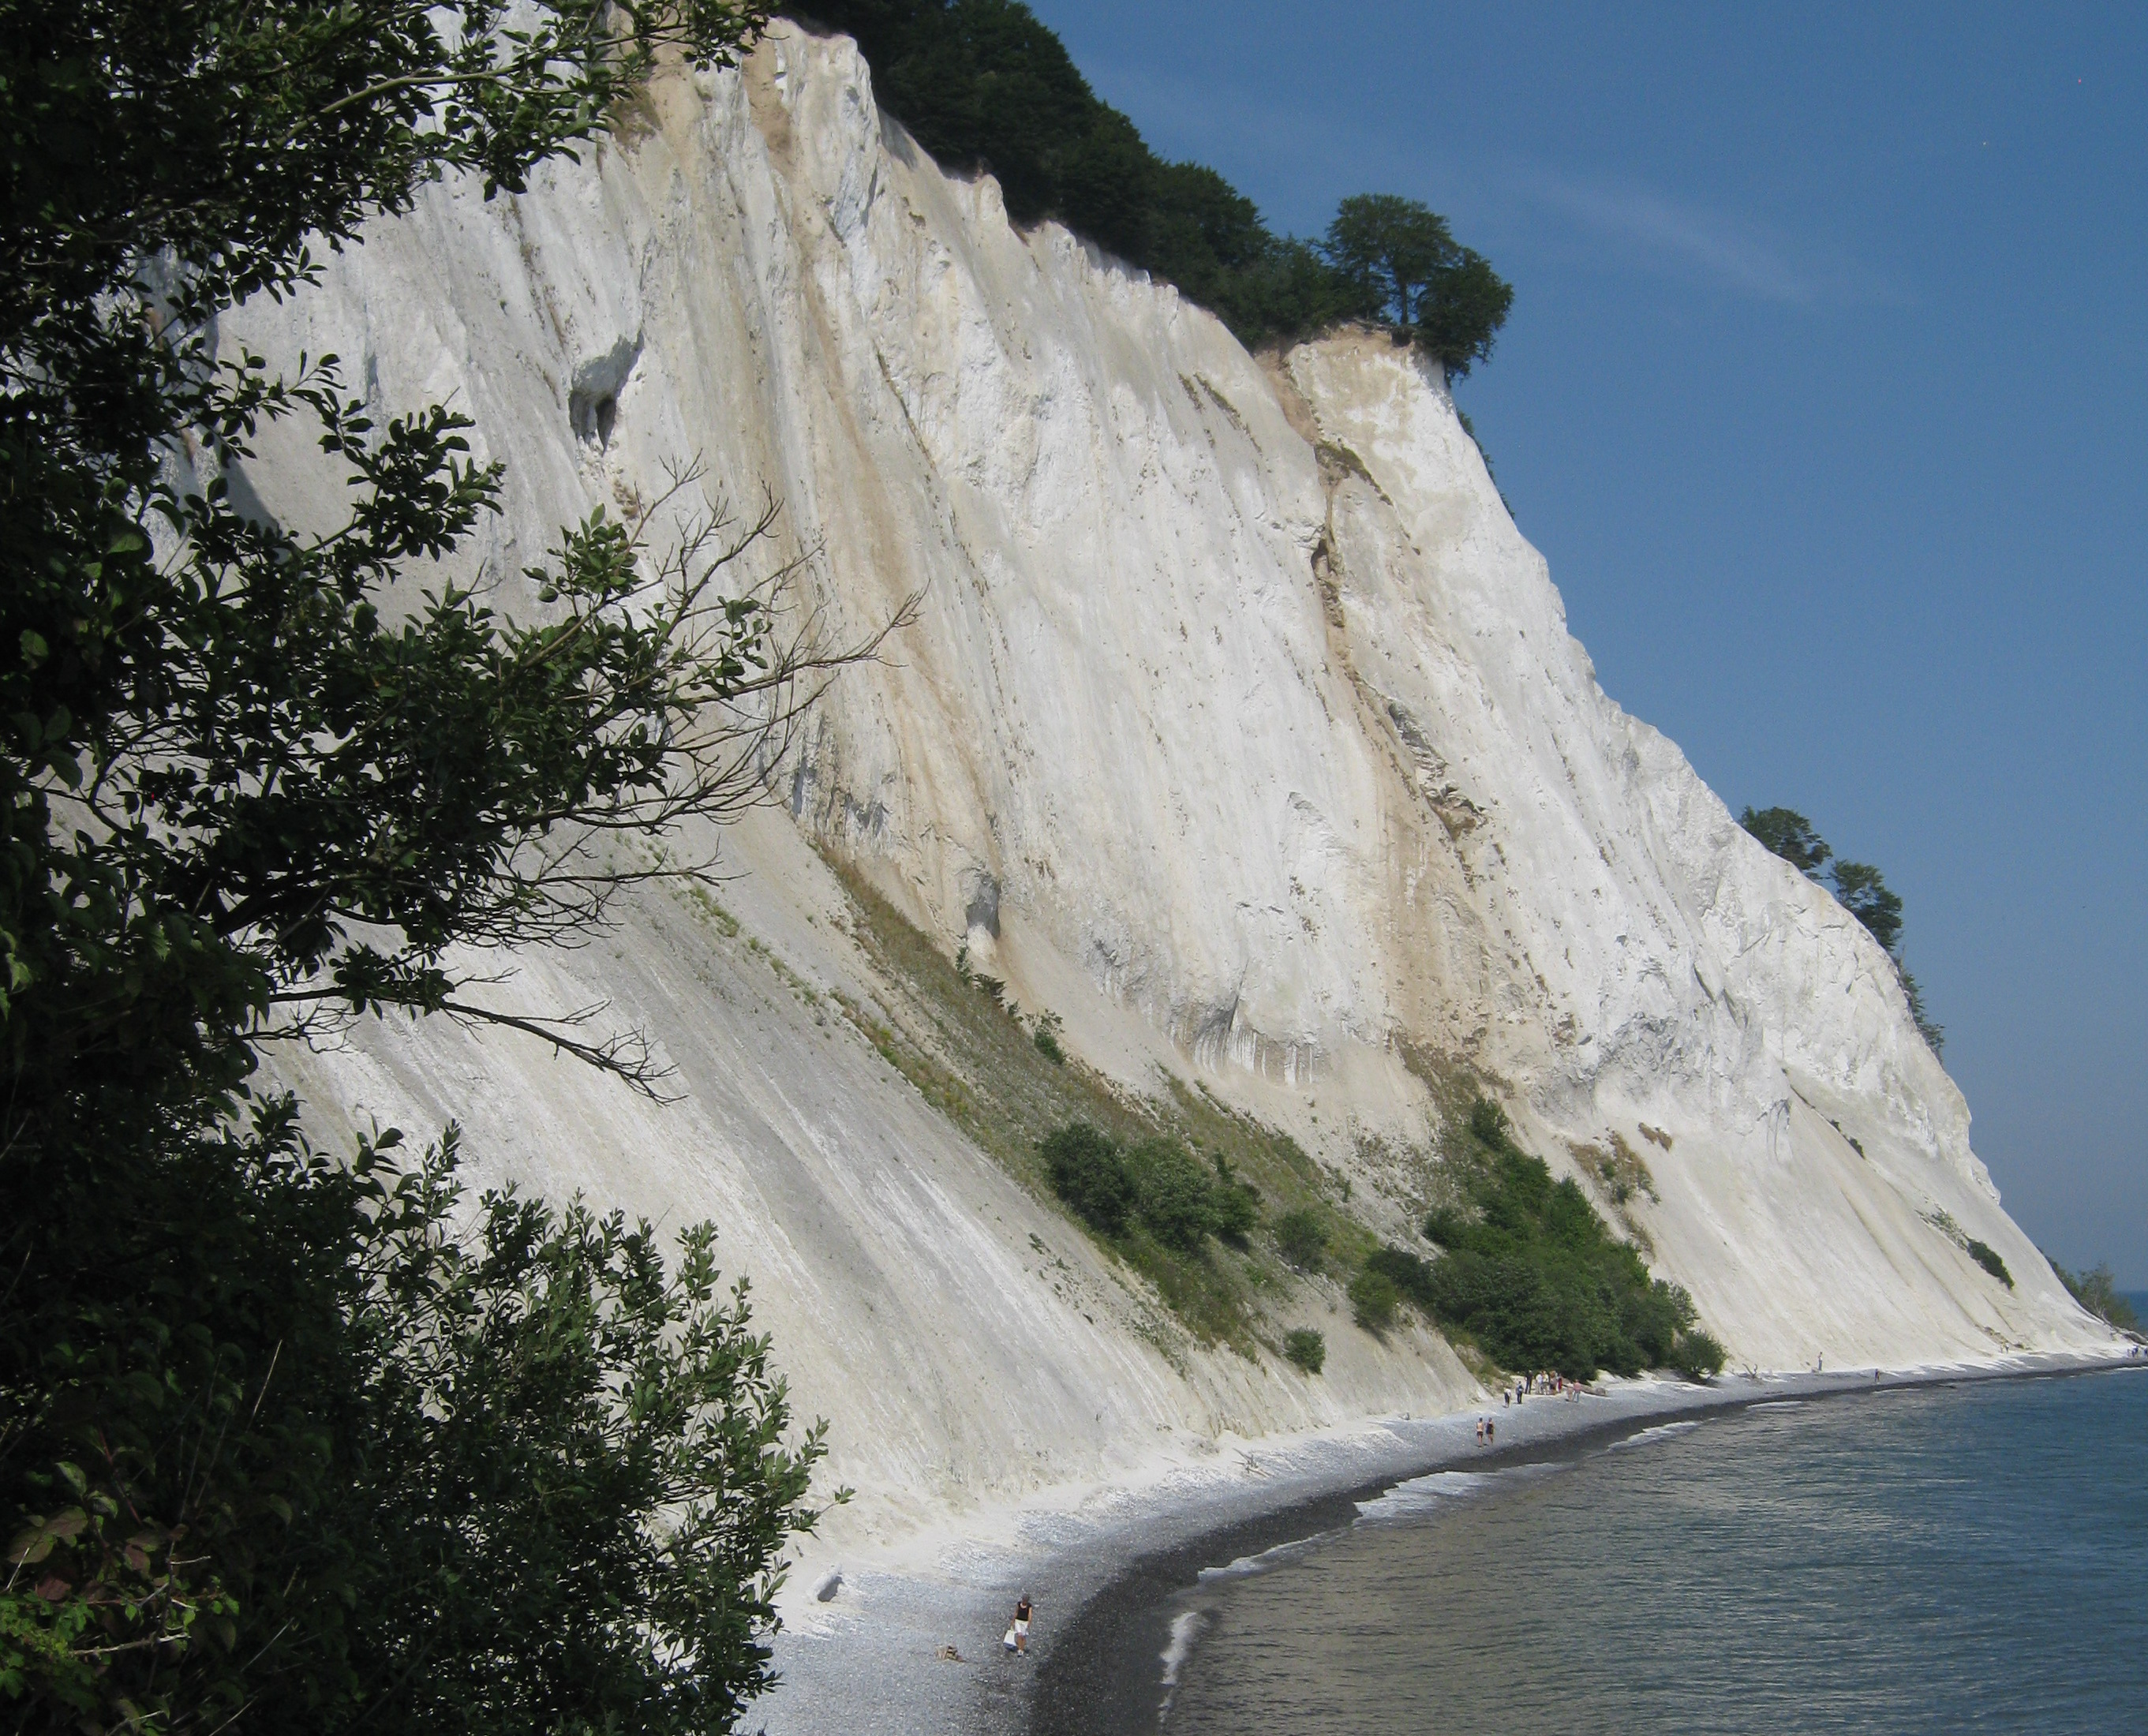 White cliffs on Moen